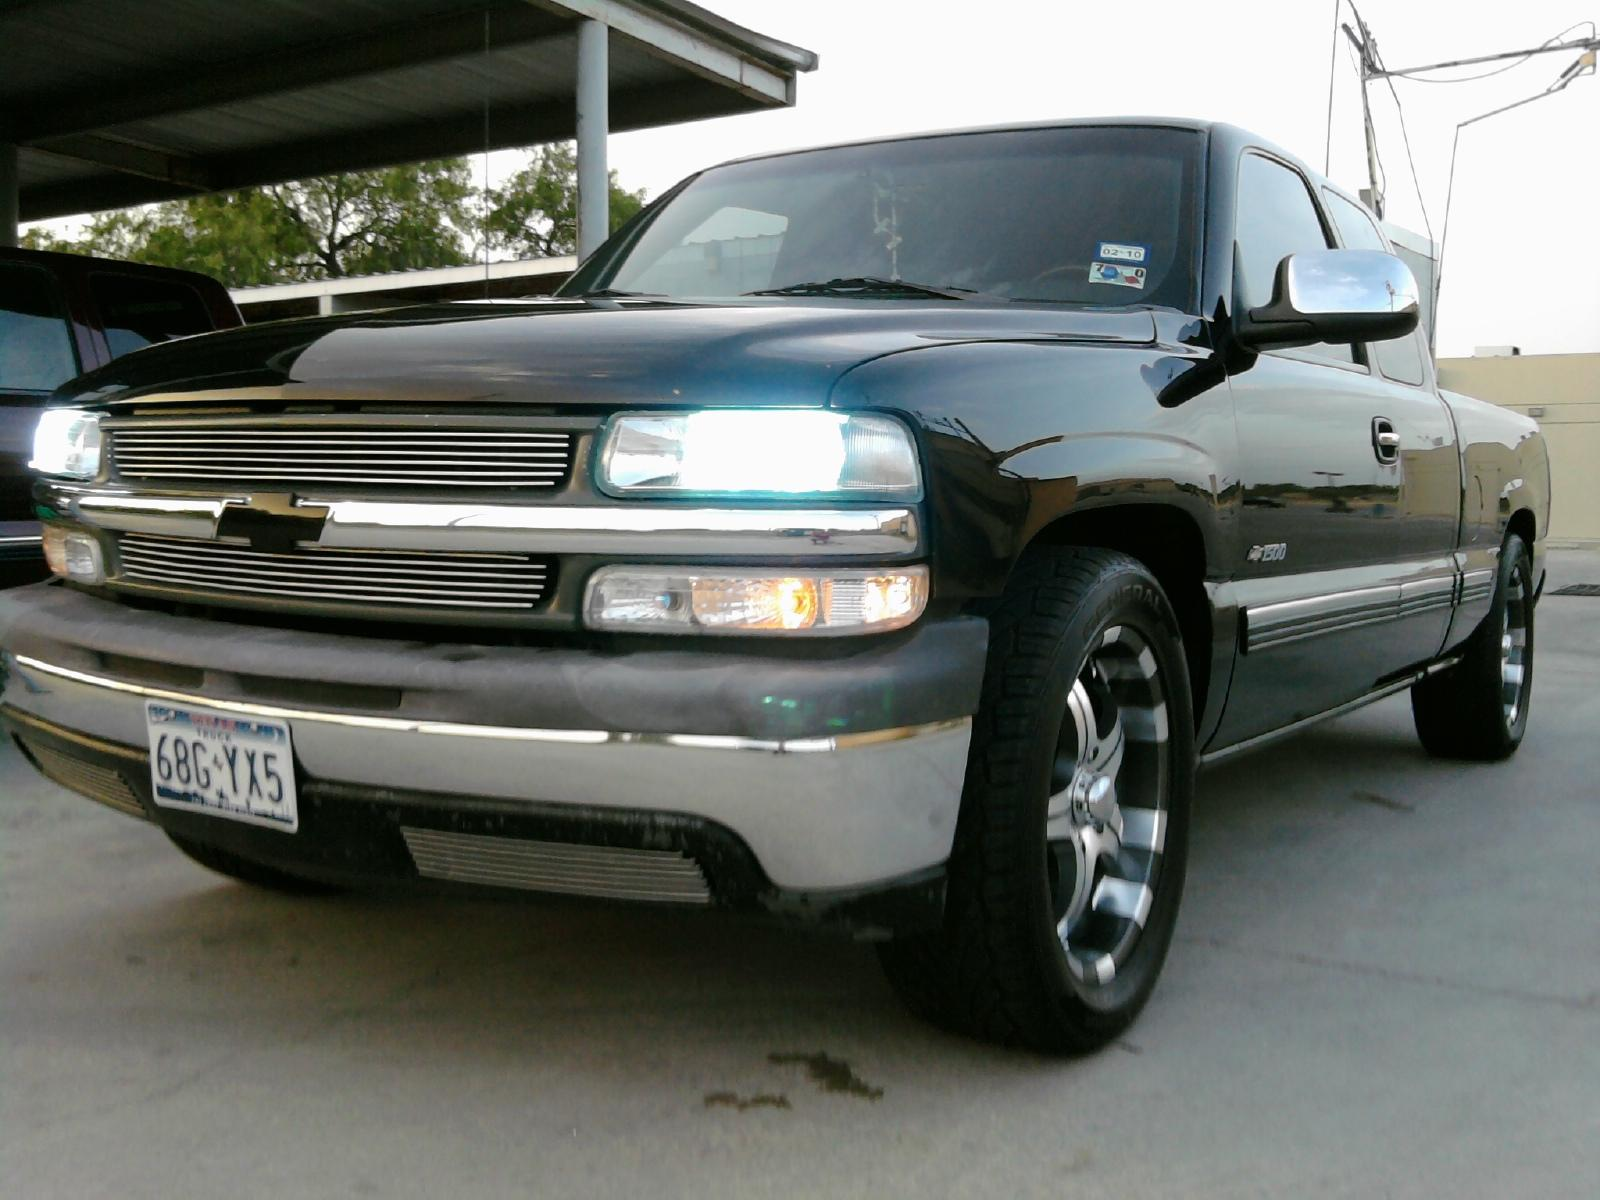 texastruckin01 2001 chevrolet silverado 1500 regular cab. Black Bedroom Furniture Sets. Home Design Ideas